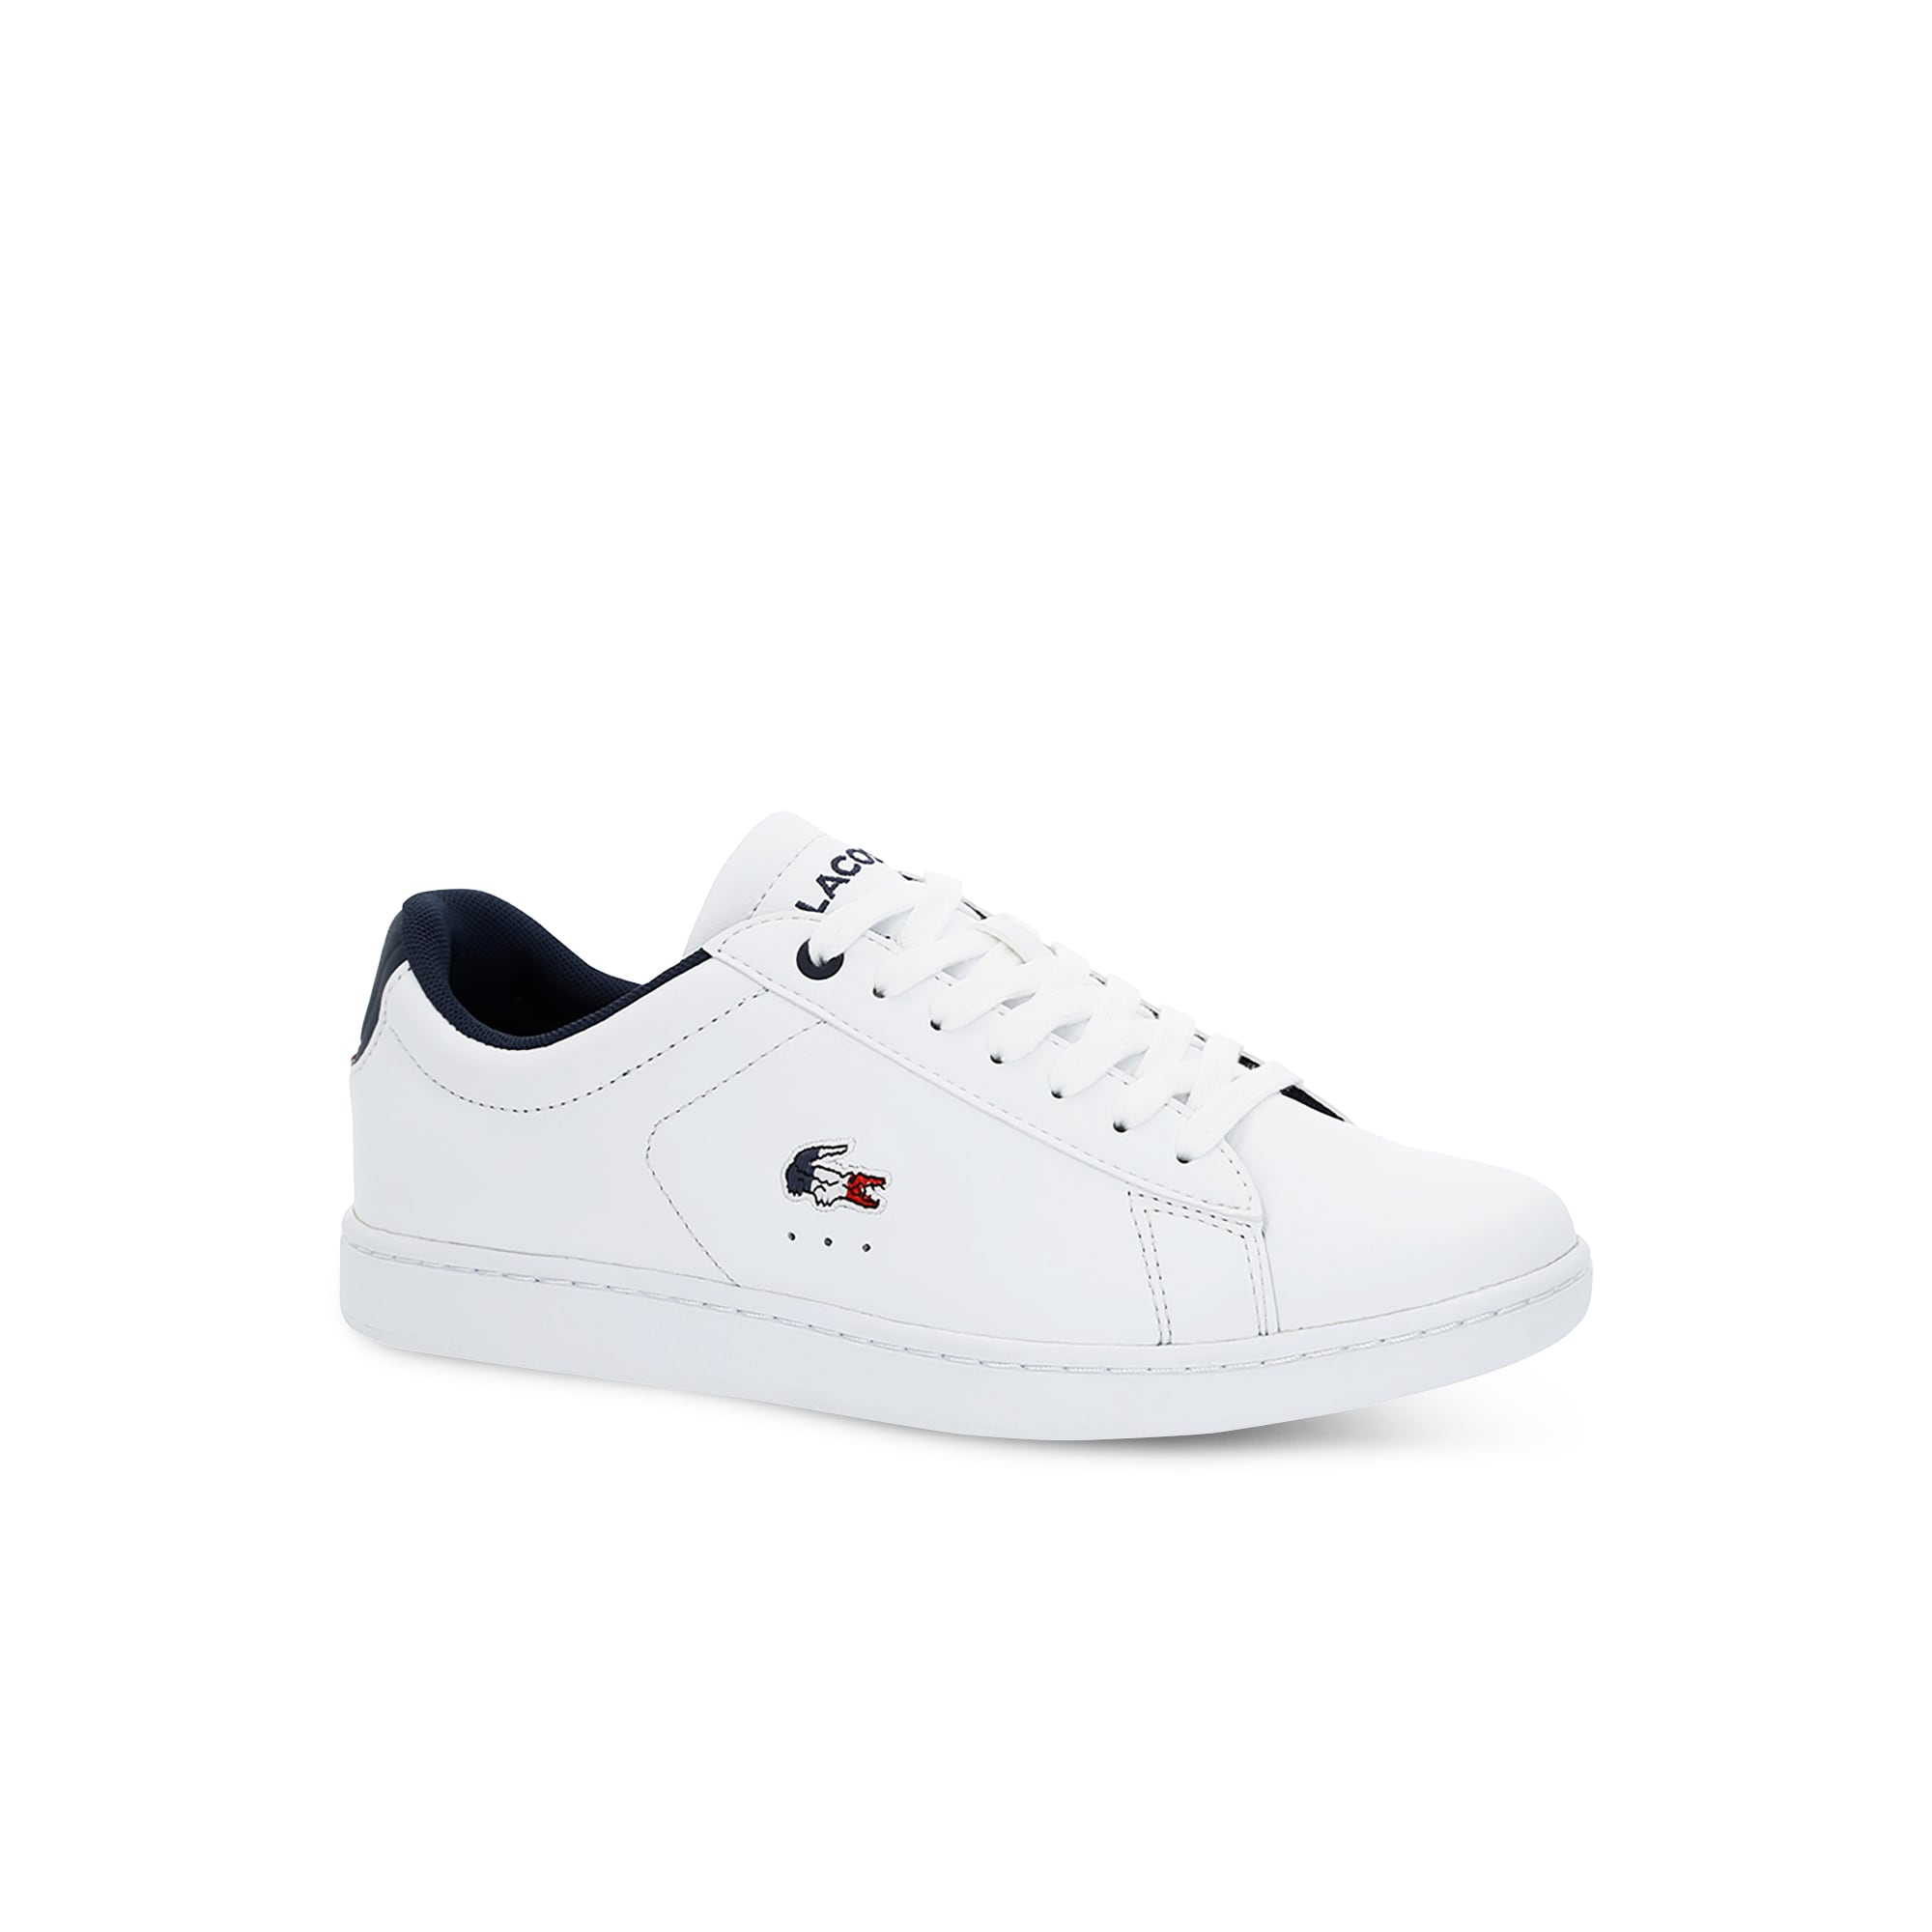 Chaussures femme   Collection Femme   LACOSTE 2f9751b2ce49